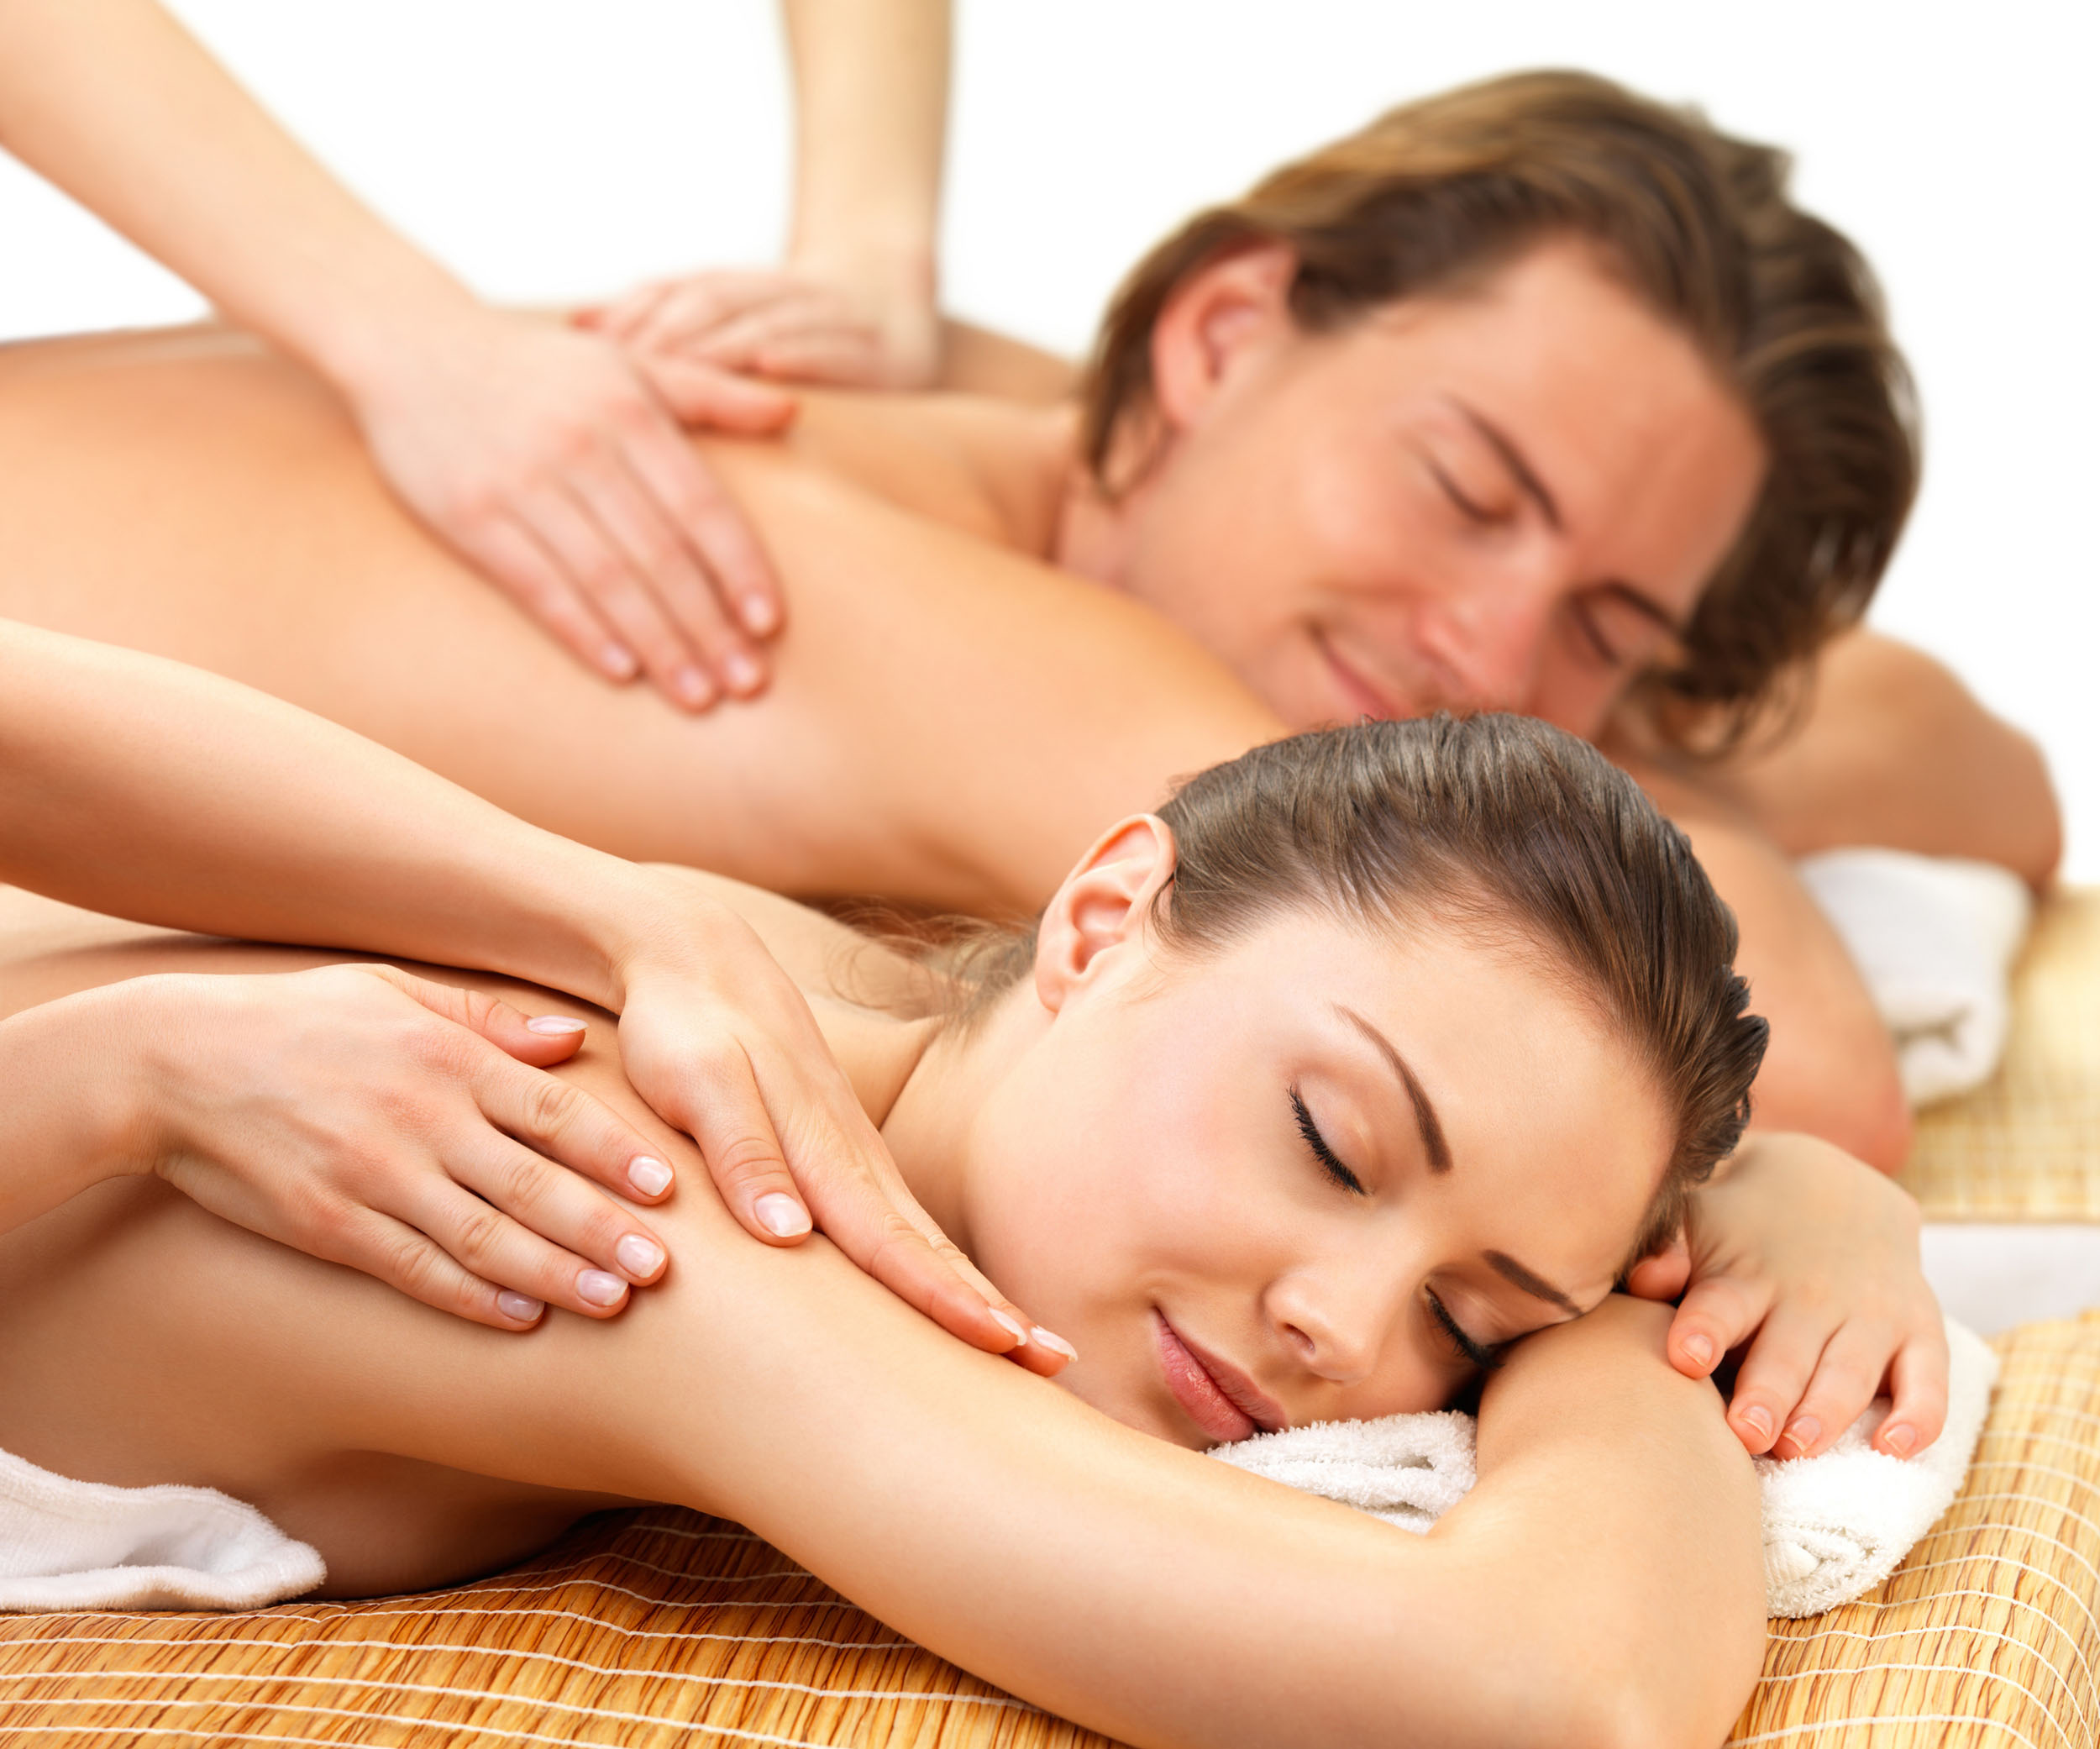 men-women-massage.jpg